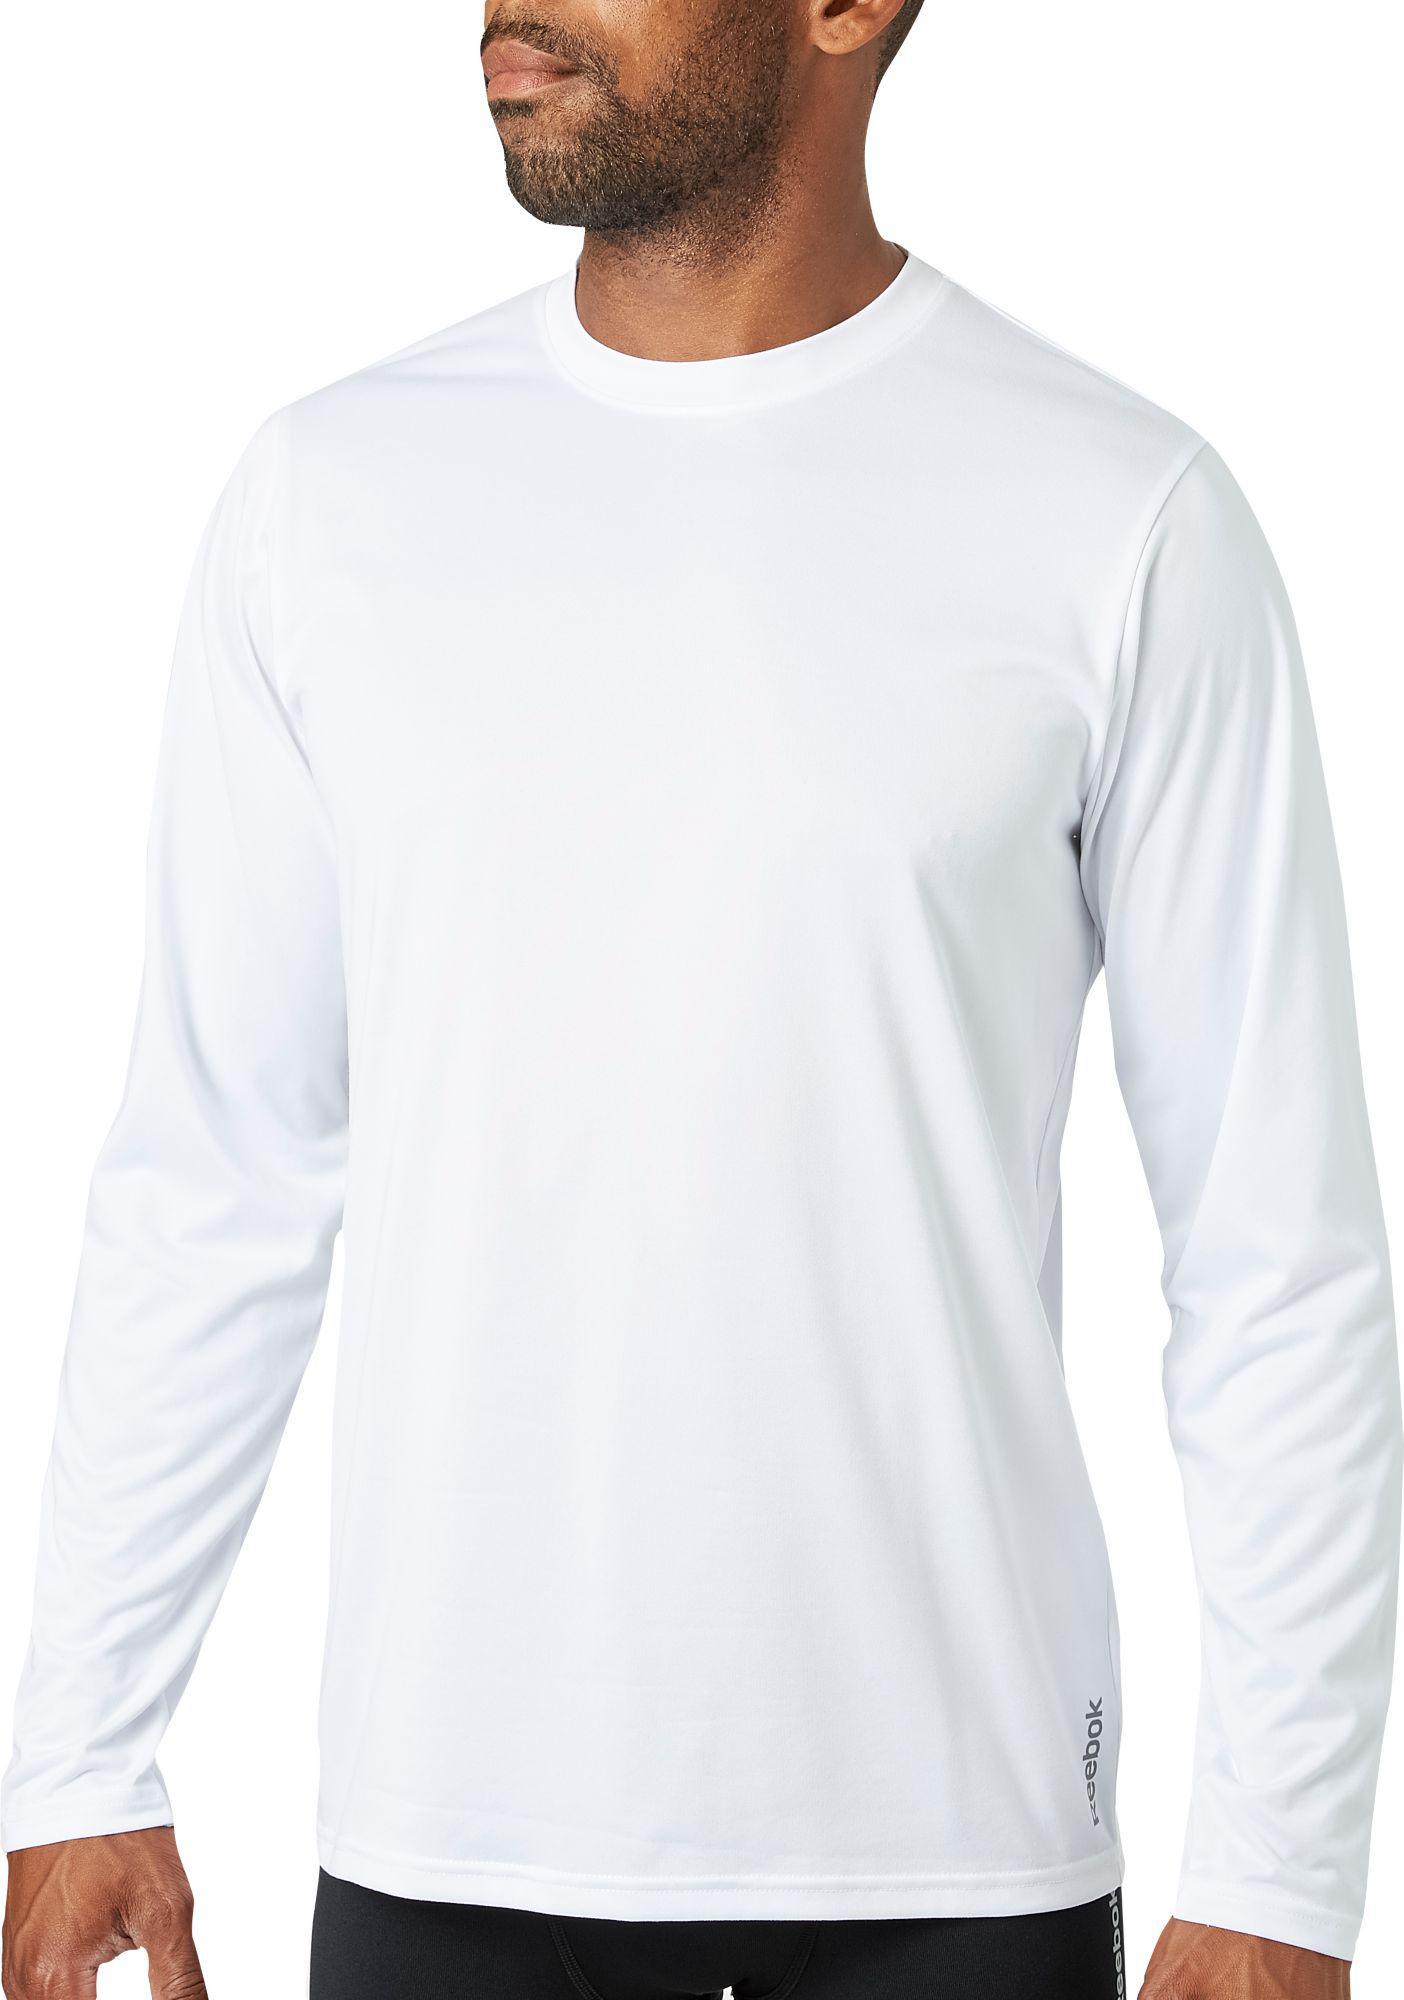 d3b0c842ac2c Lyst - Reebok Vector Long Sleeve Shirt in White for Men